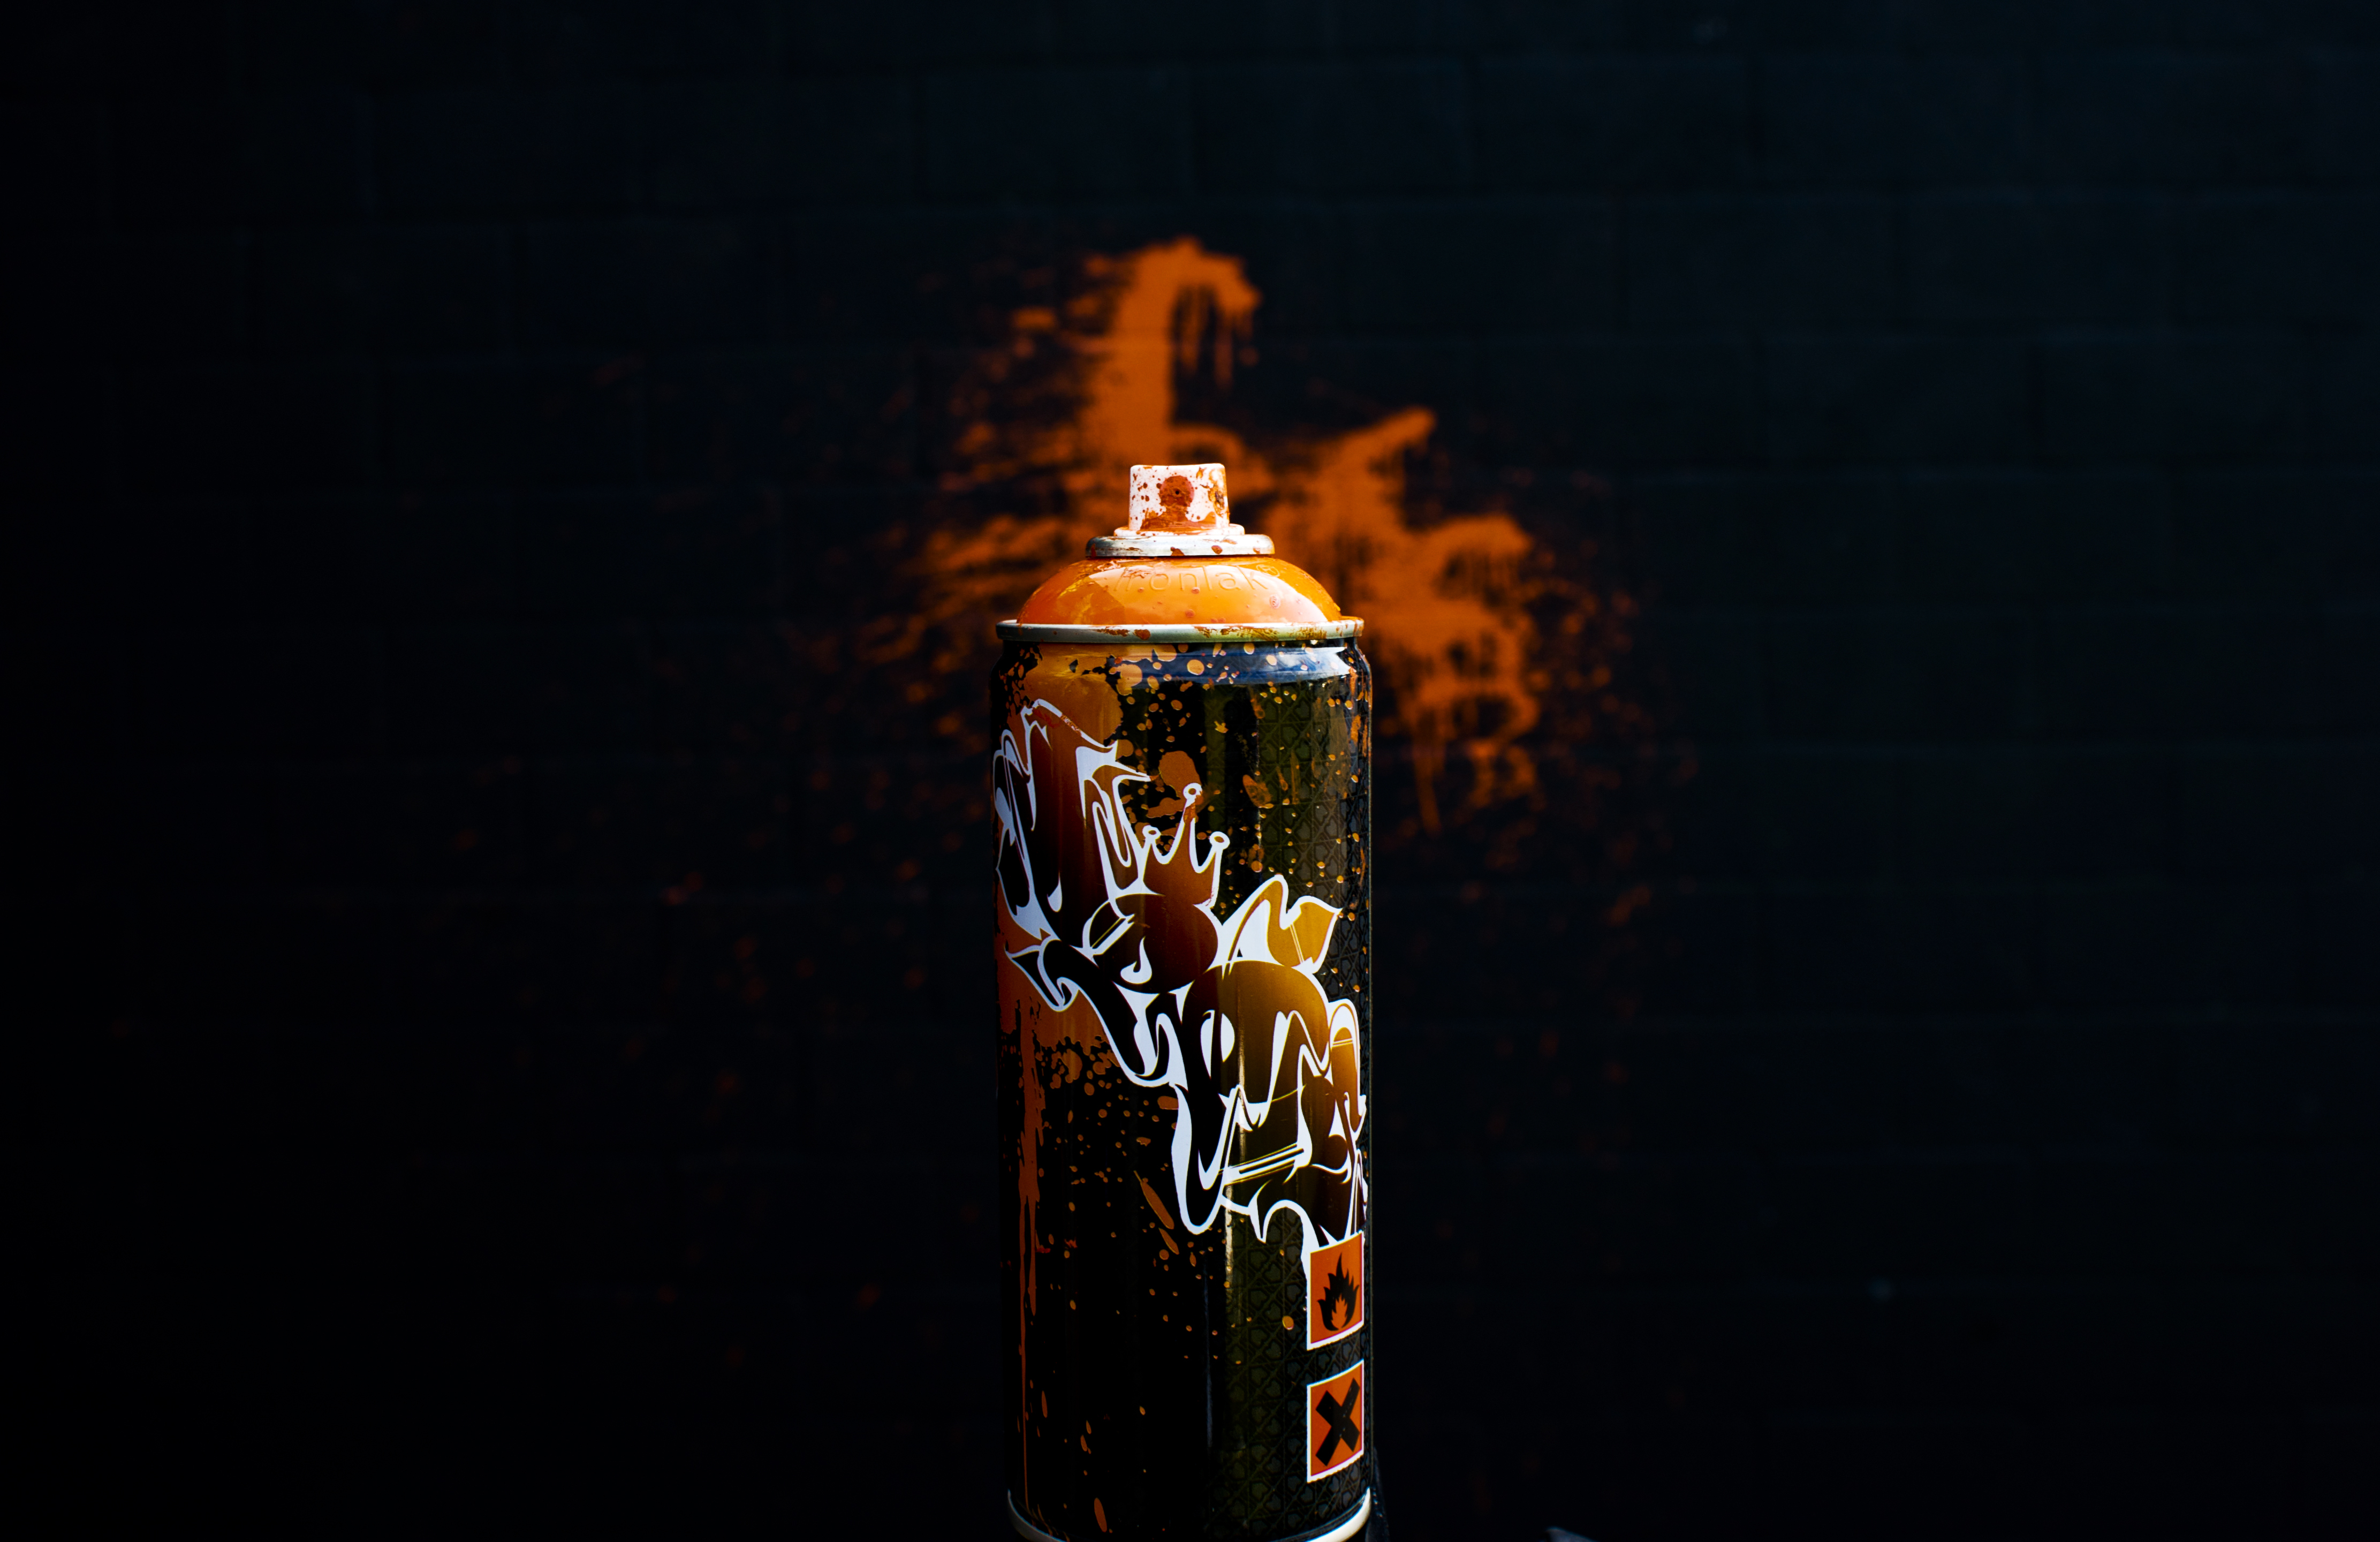 A work by Does - Spraycan dieci does 3